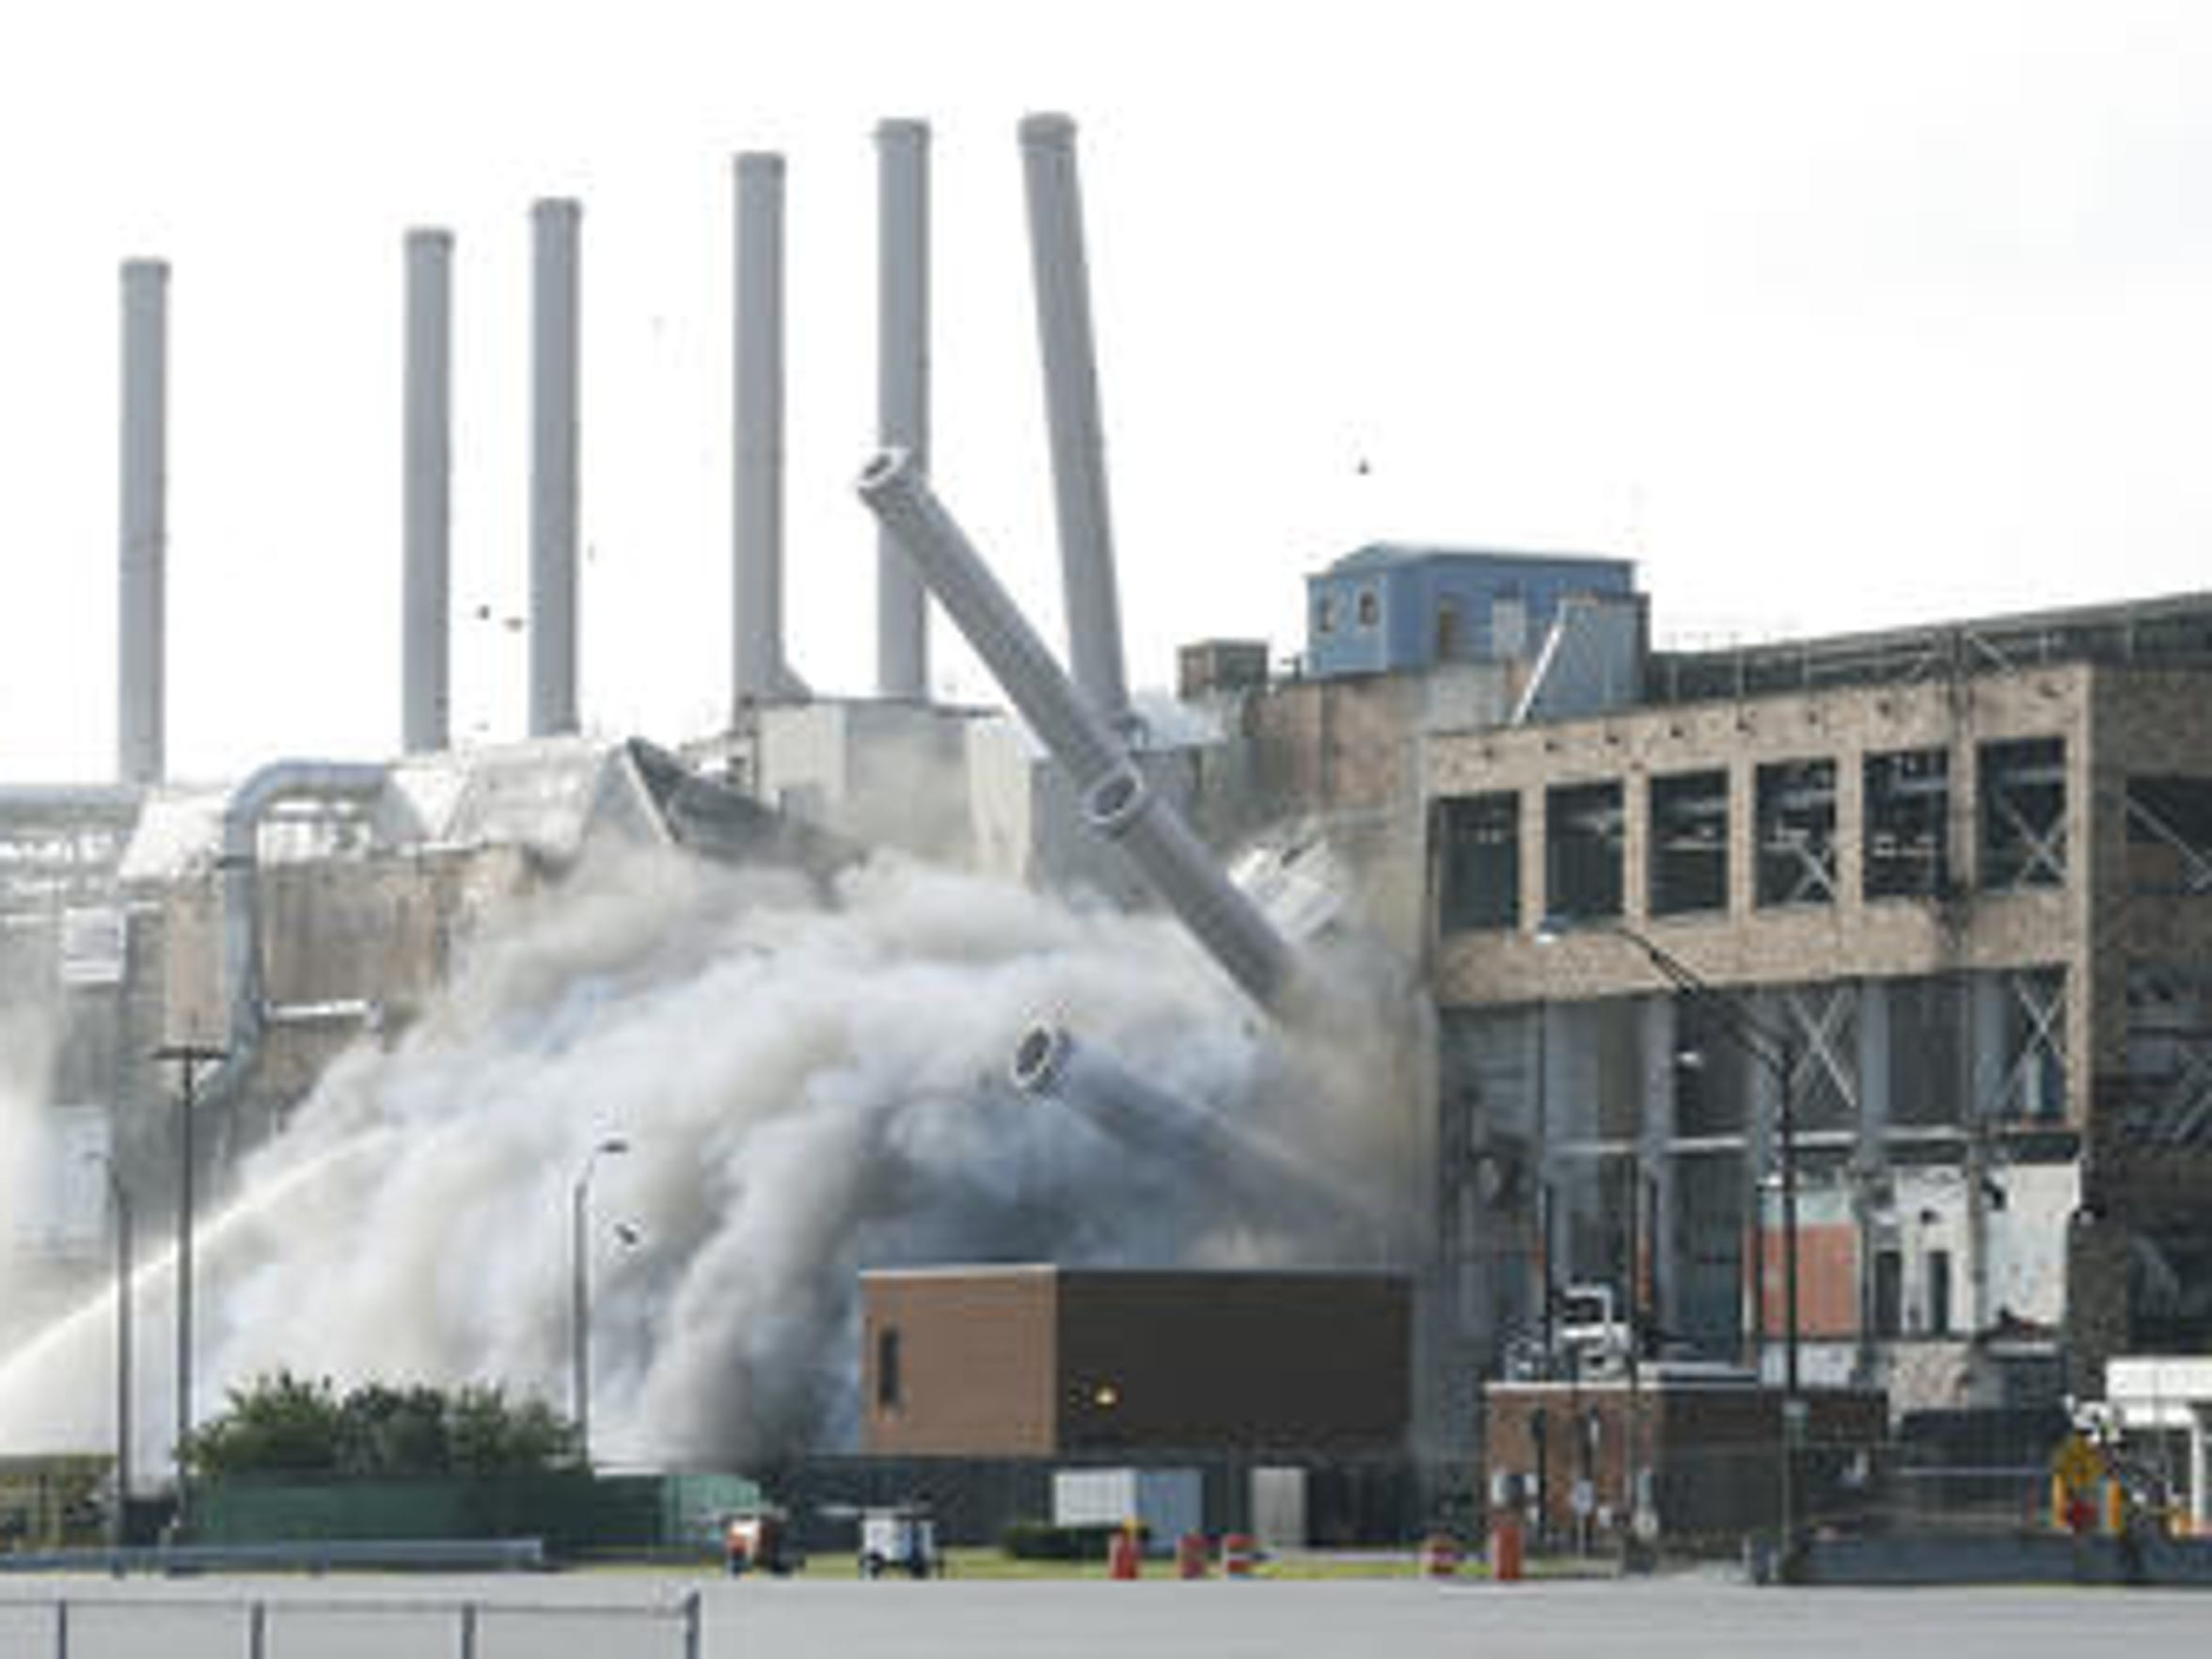 Kodak implodes an abandoned building at its Eastman Business Park in Rochester, New York.